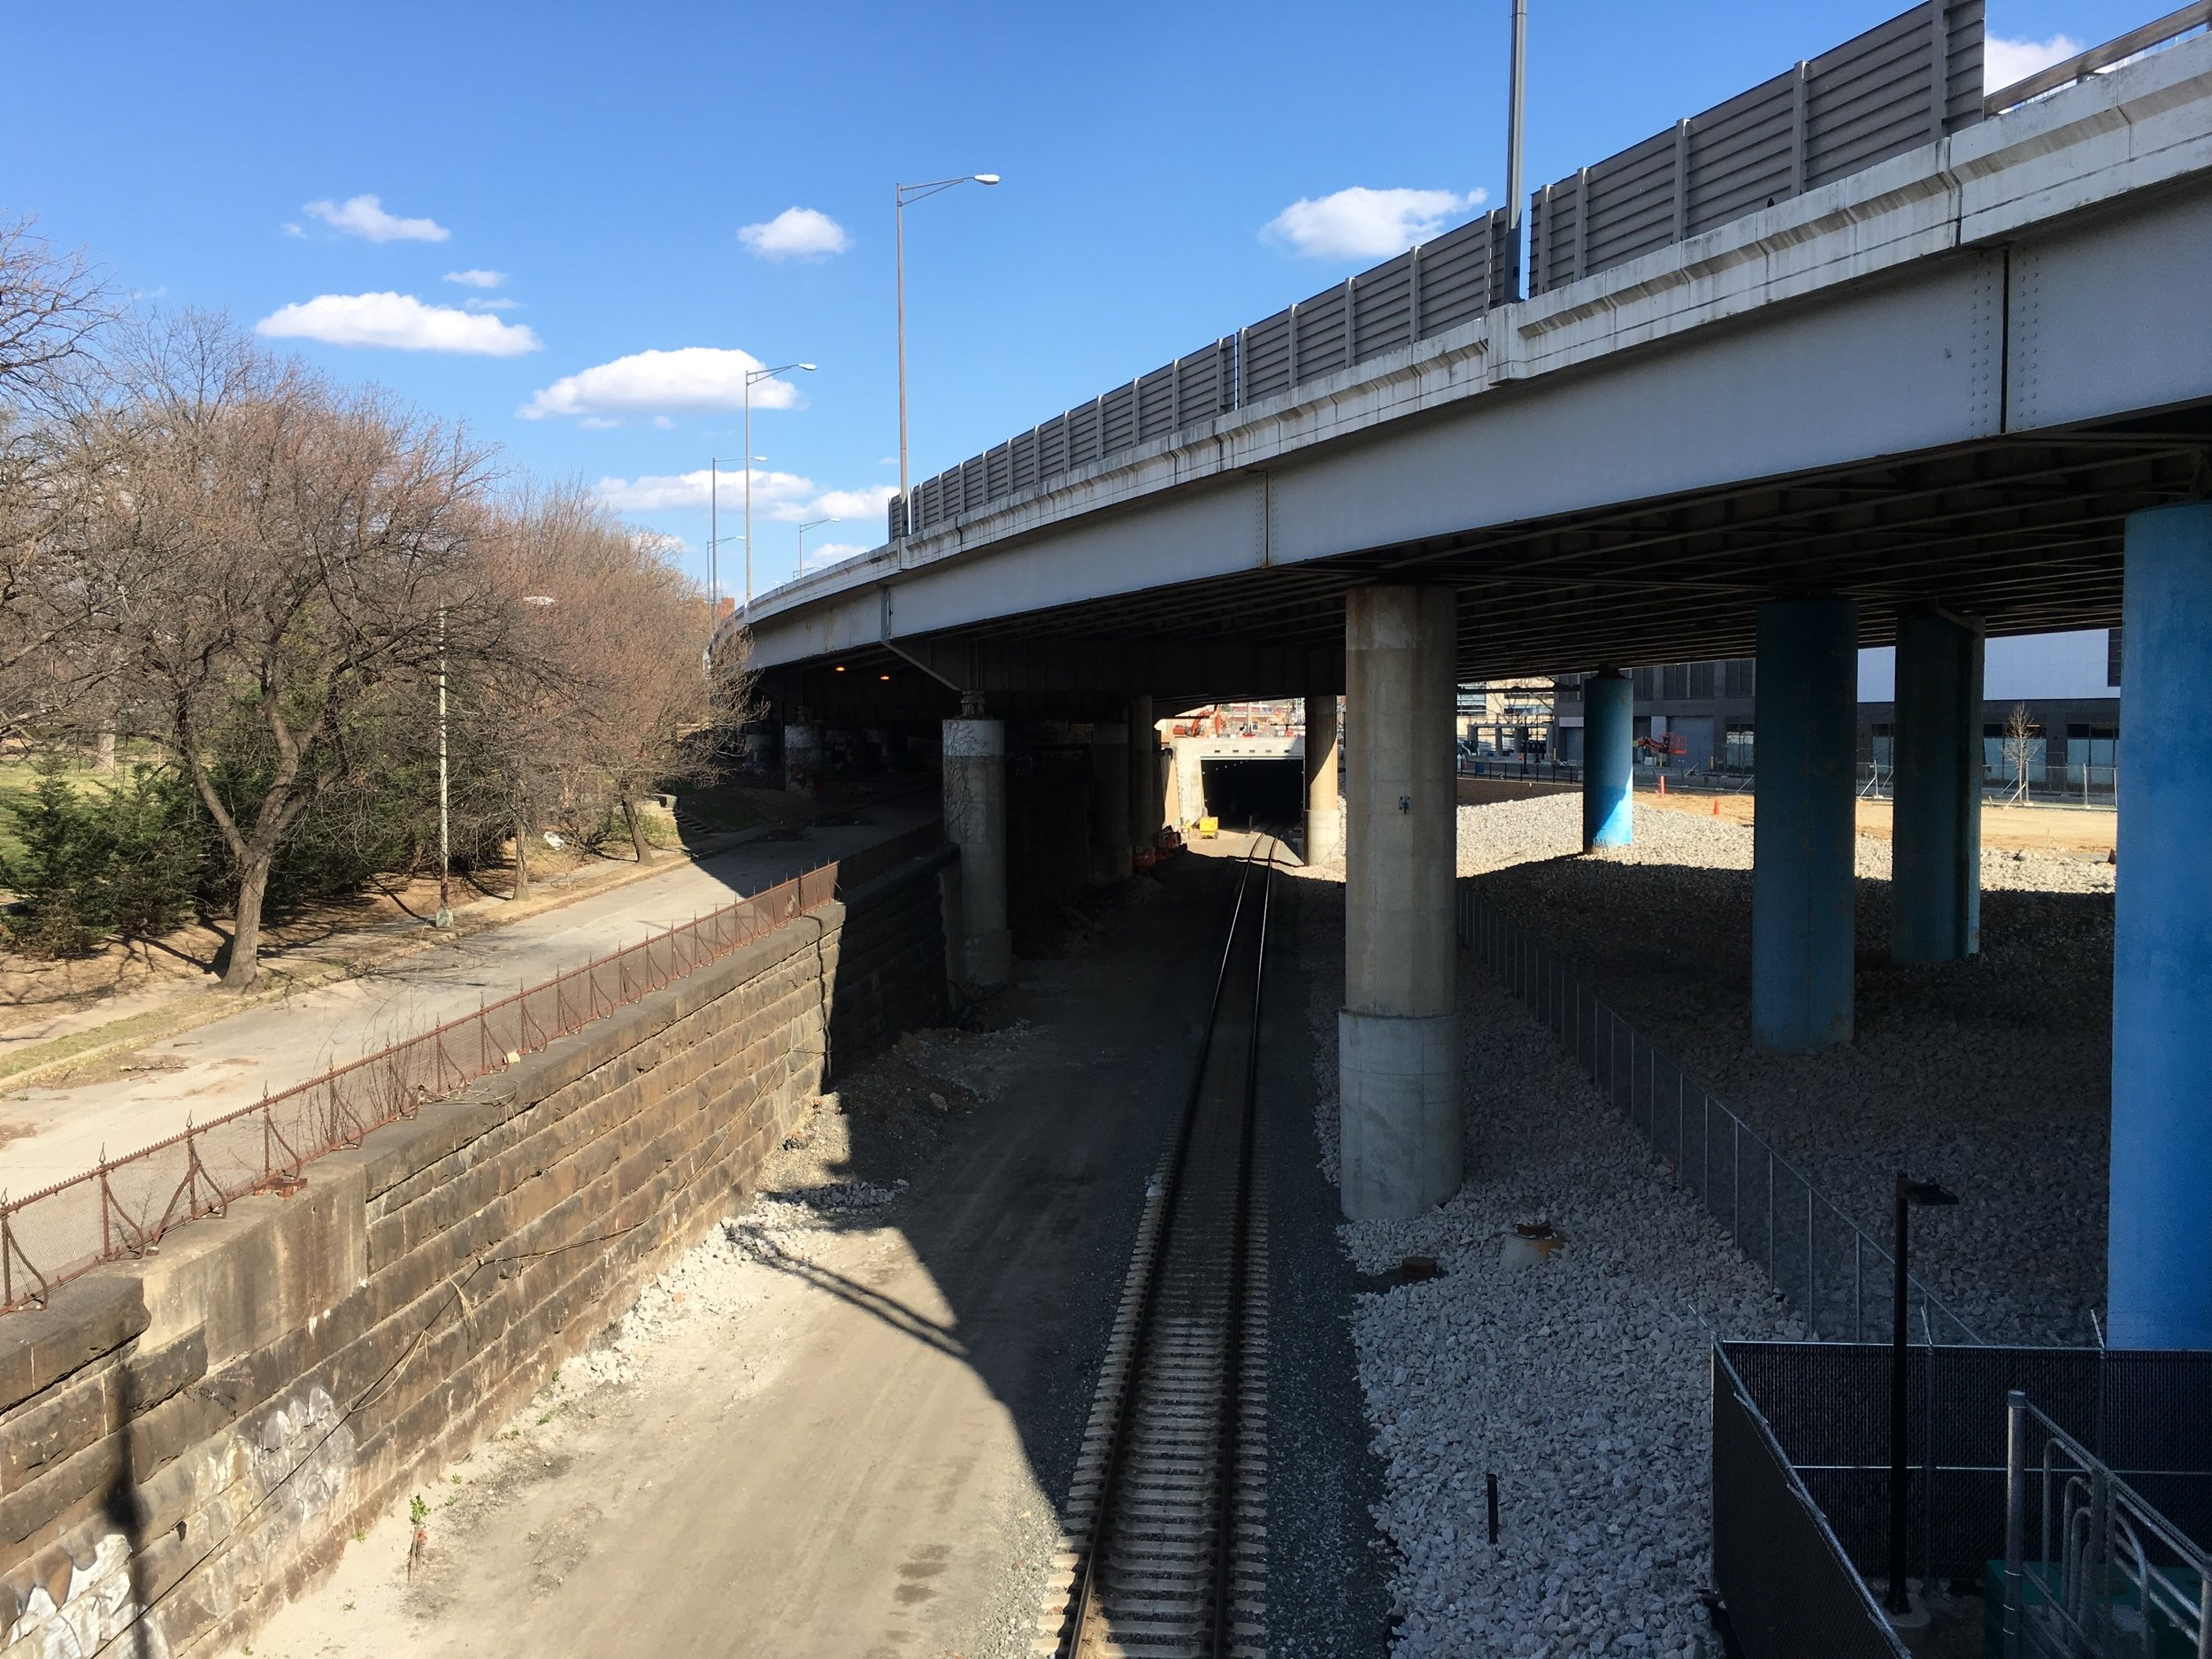 A sunken trench carries the tracks into the new Virginia Avenue Tunnel. Photo: Elliot Carter